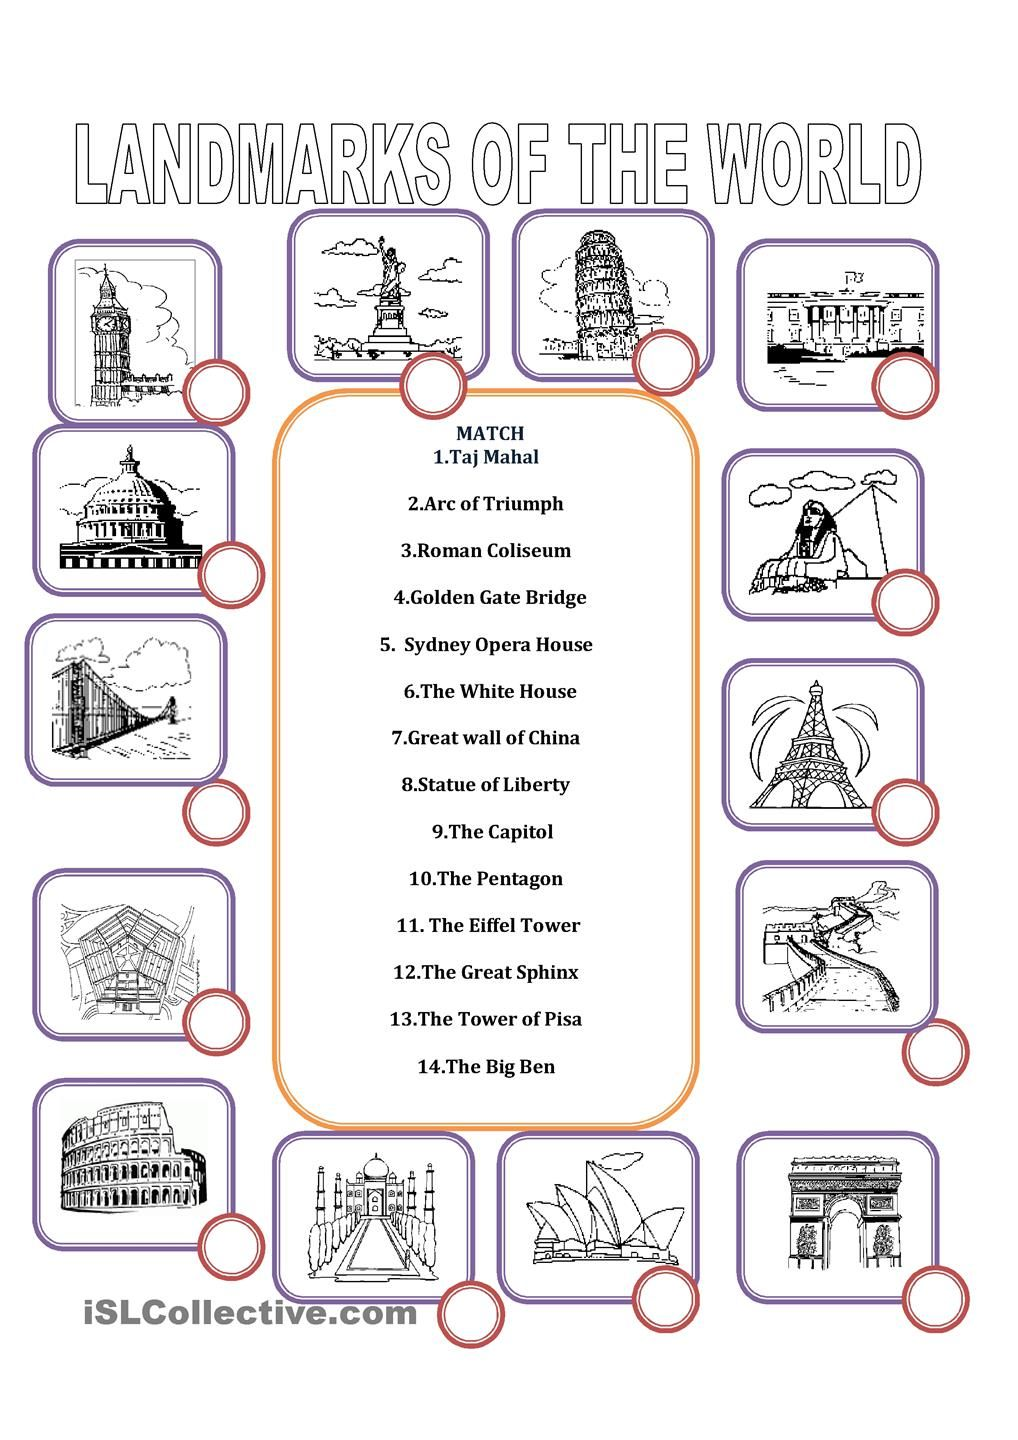 worksheet Liberty Kids Worksheets landmarks of the world pinterest worksheets mahal coliseum gate sydney opera house white wall liberty pentagon eiffel great sphinx tower big ben esl worksheets